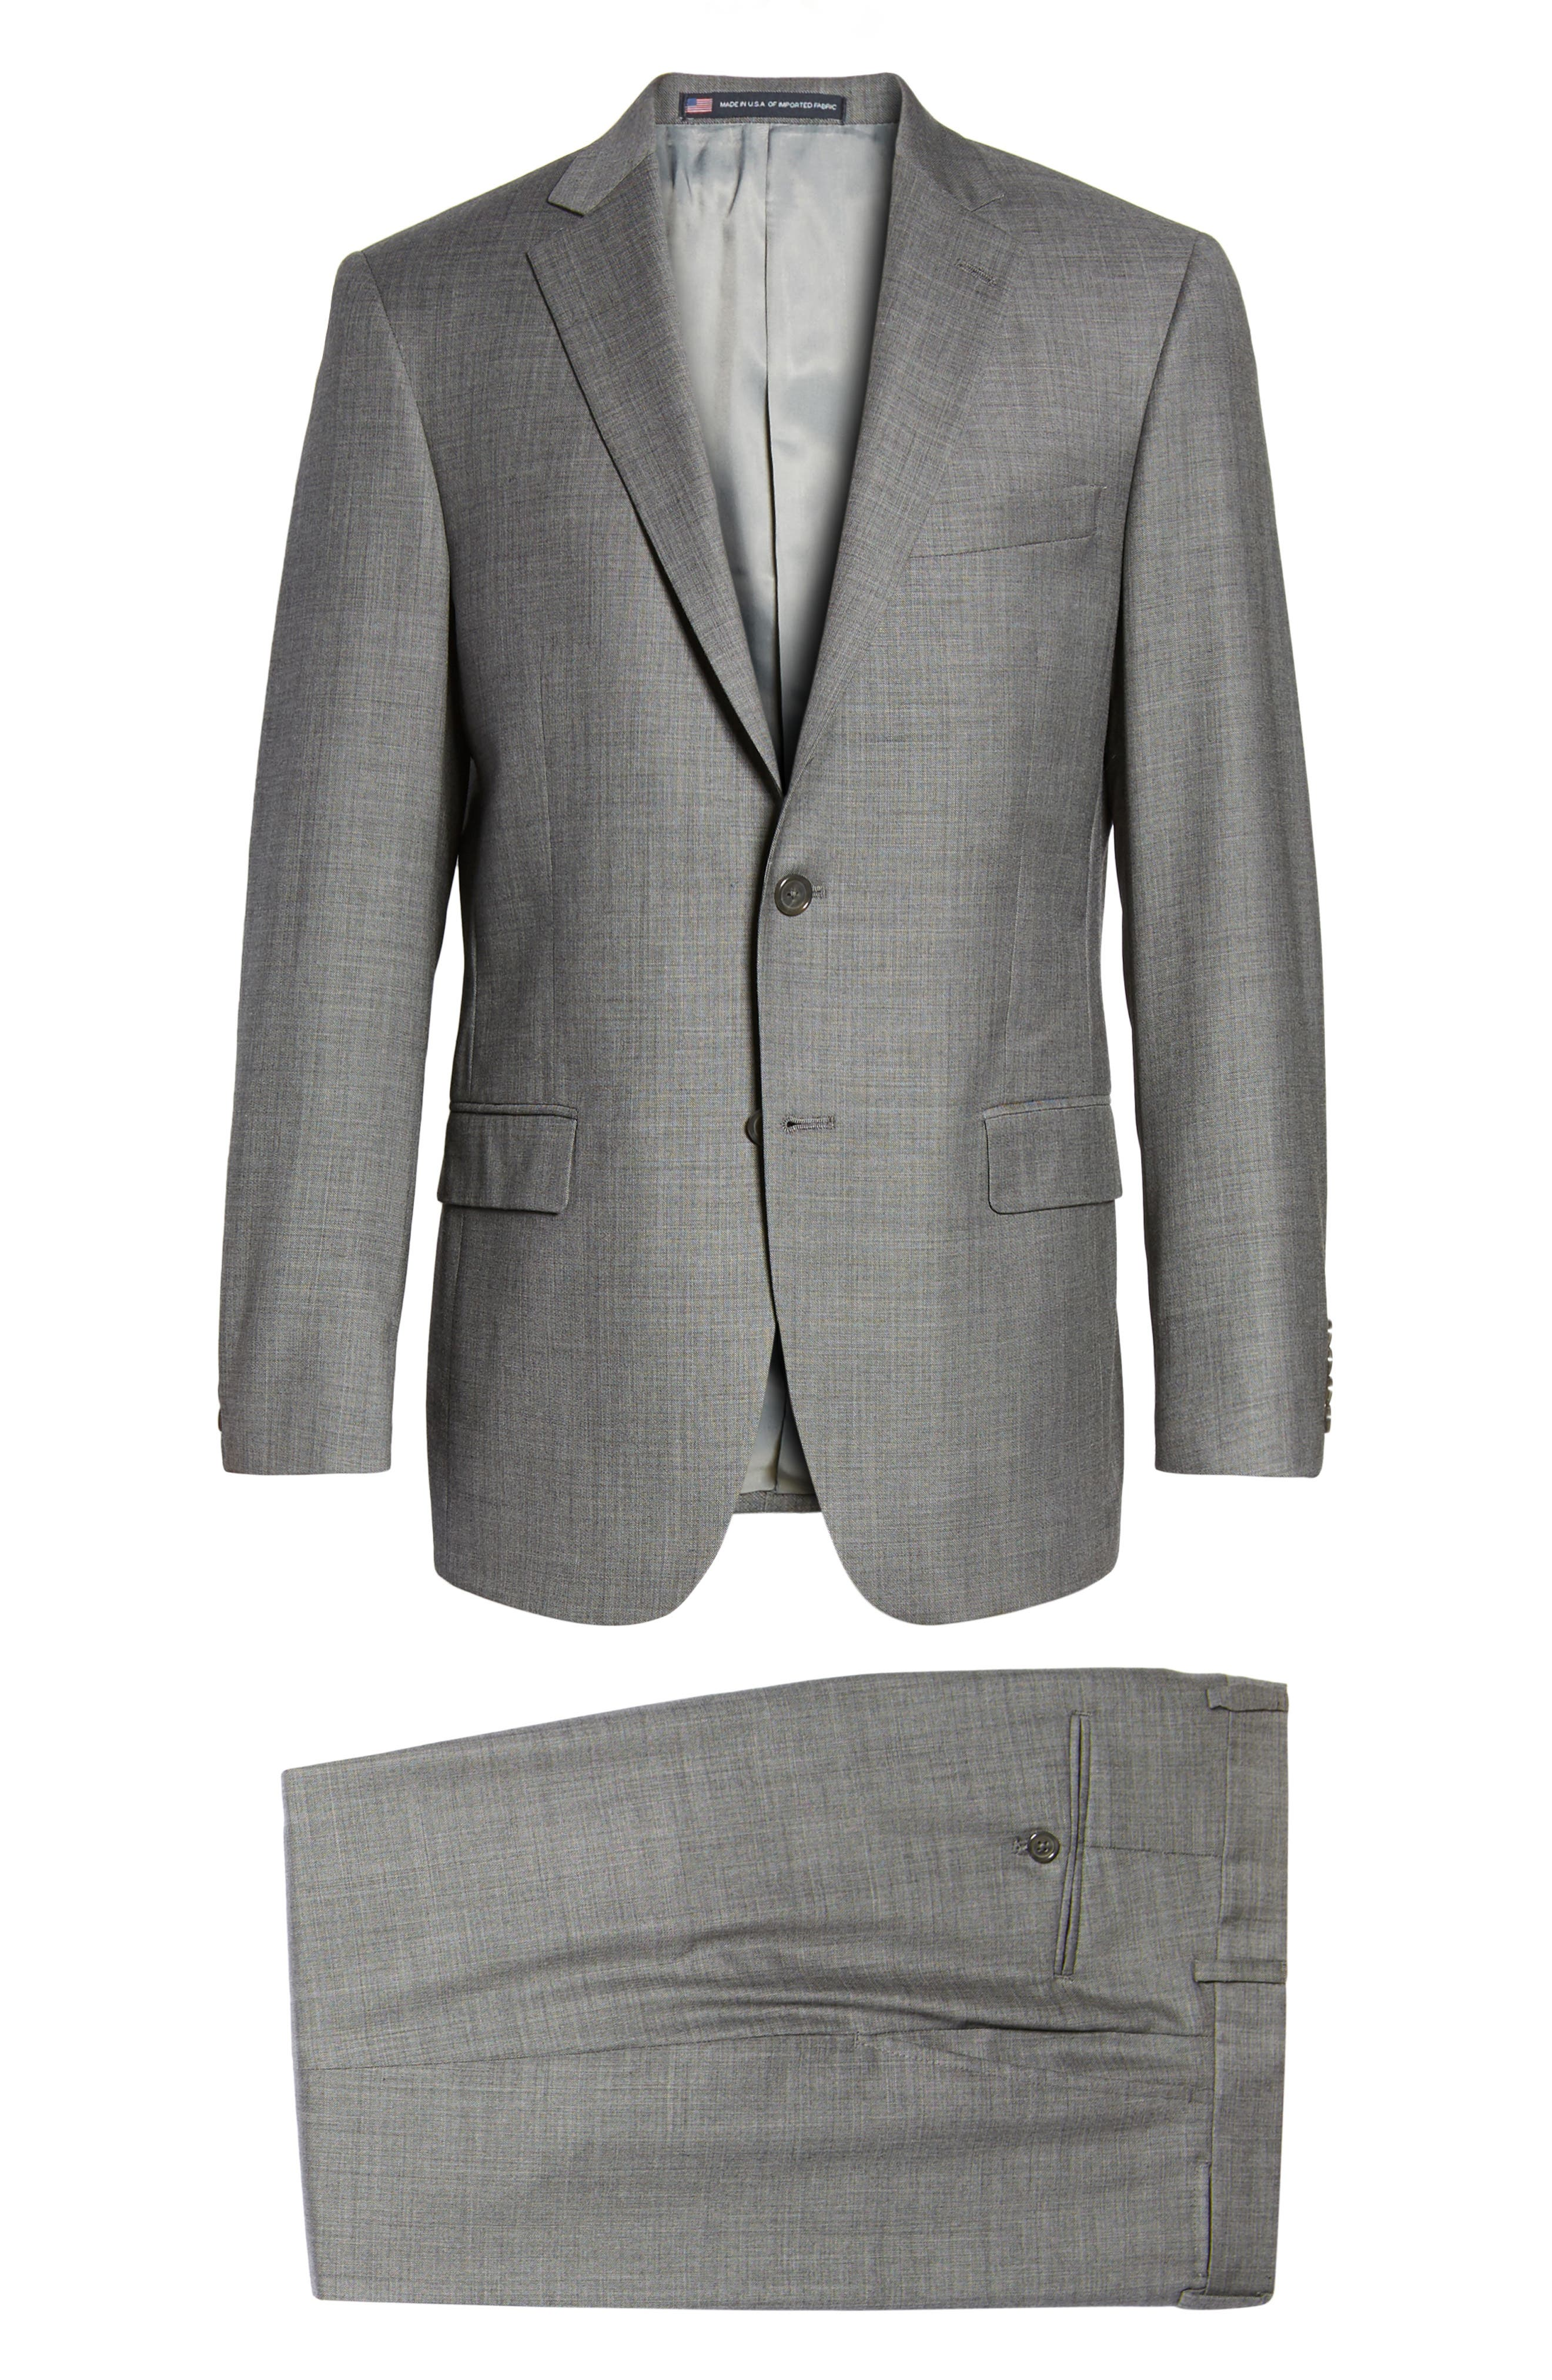 Classic Fit Solid Wool Suit,                             Alternate thumbnail 8, color,                             Med Grey